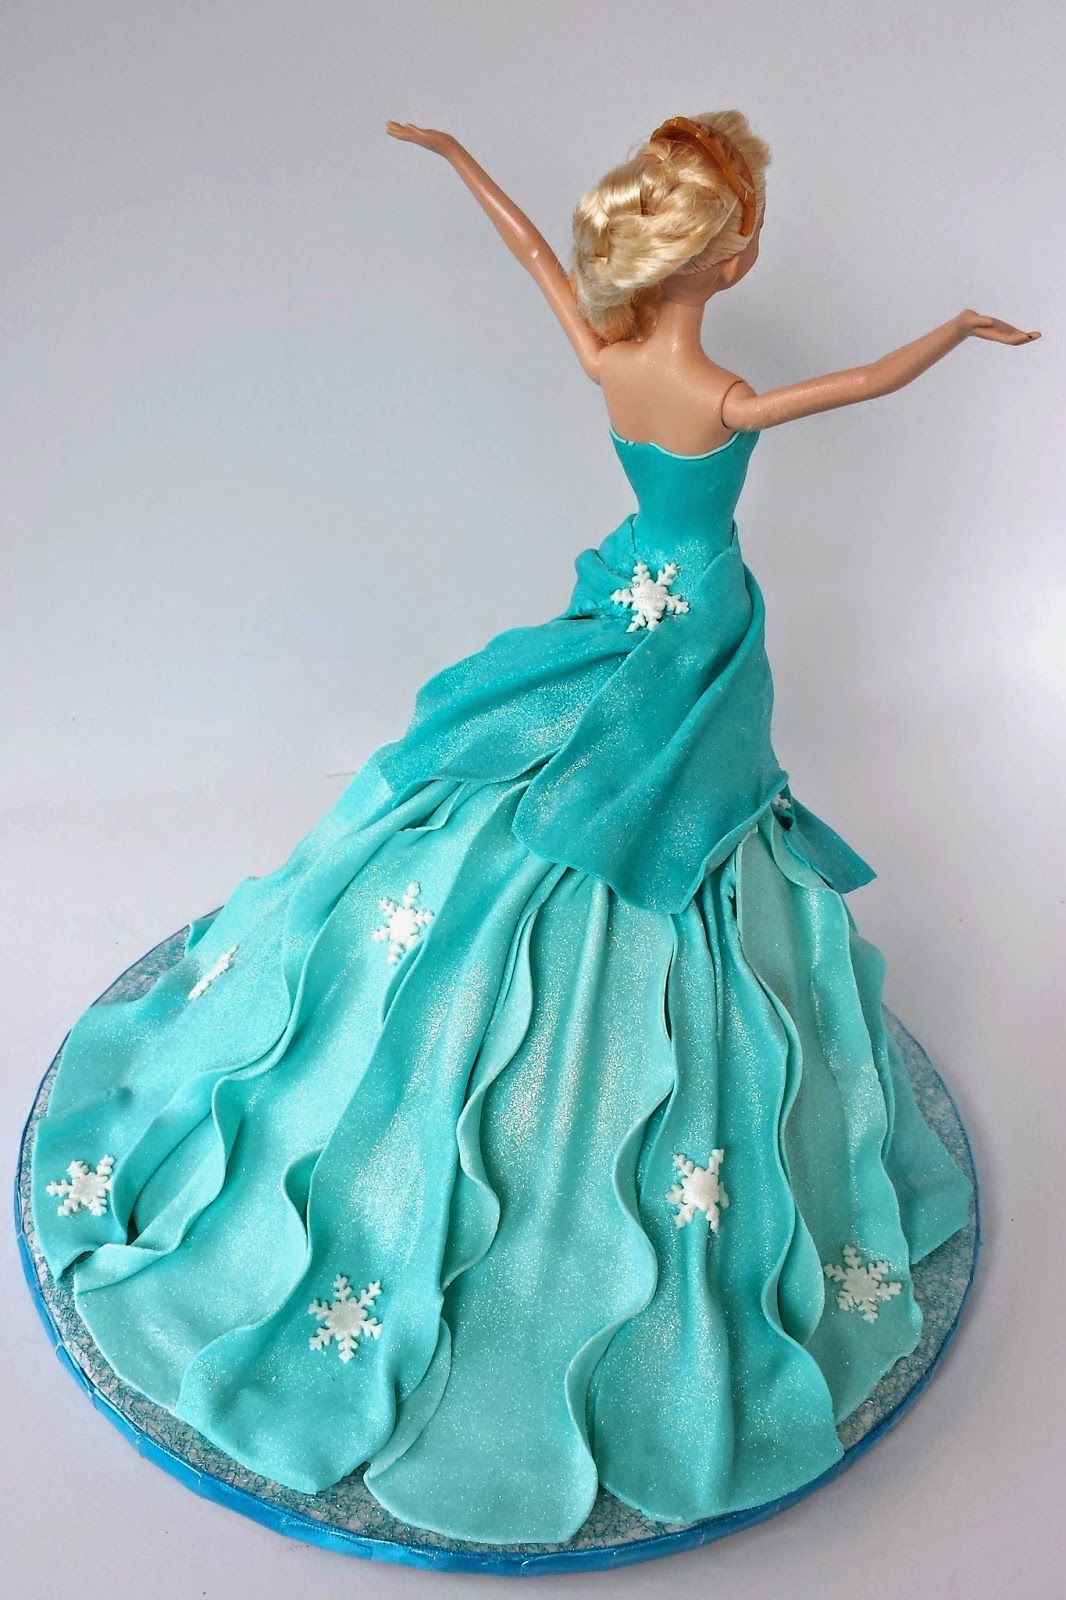 Frozen Barbie Cake Design : Cake Blog: Elsa Doll Cake Tutorial - I like the use of ...